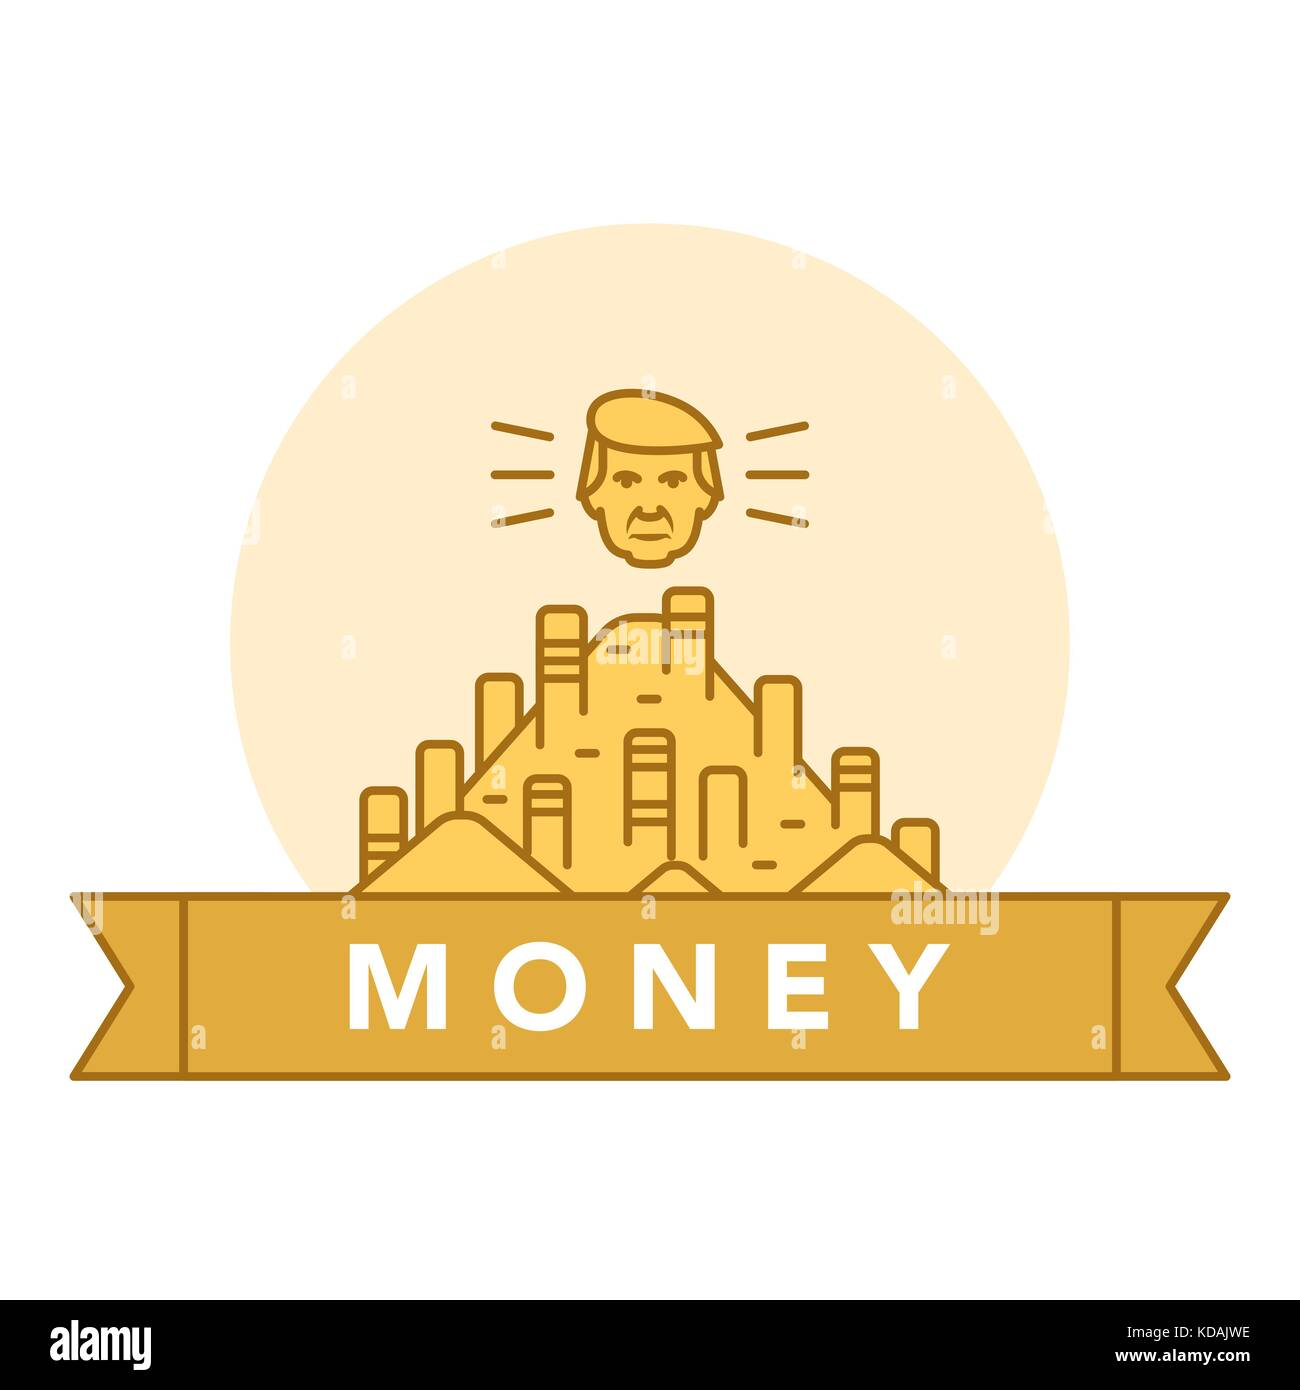 Vector illustration of golden coins on white background with lettering. Money and financial institutions topic. - Stock Vector